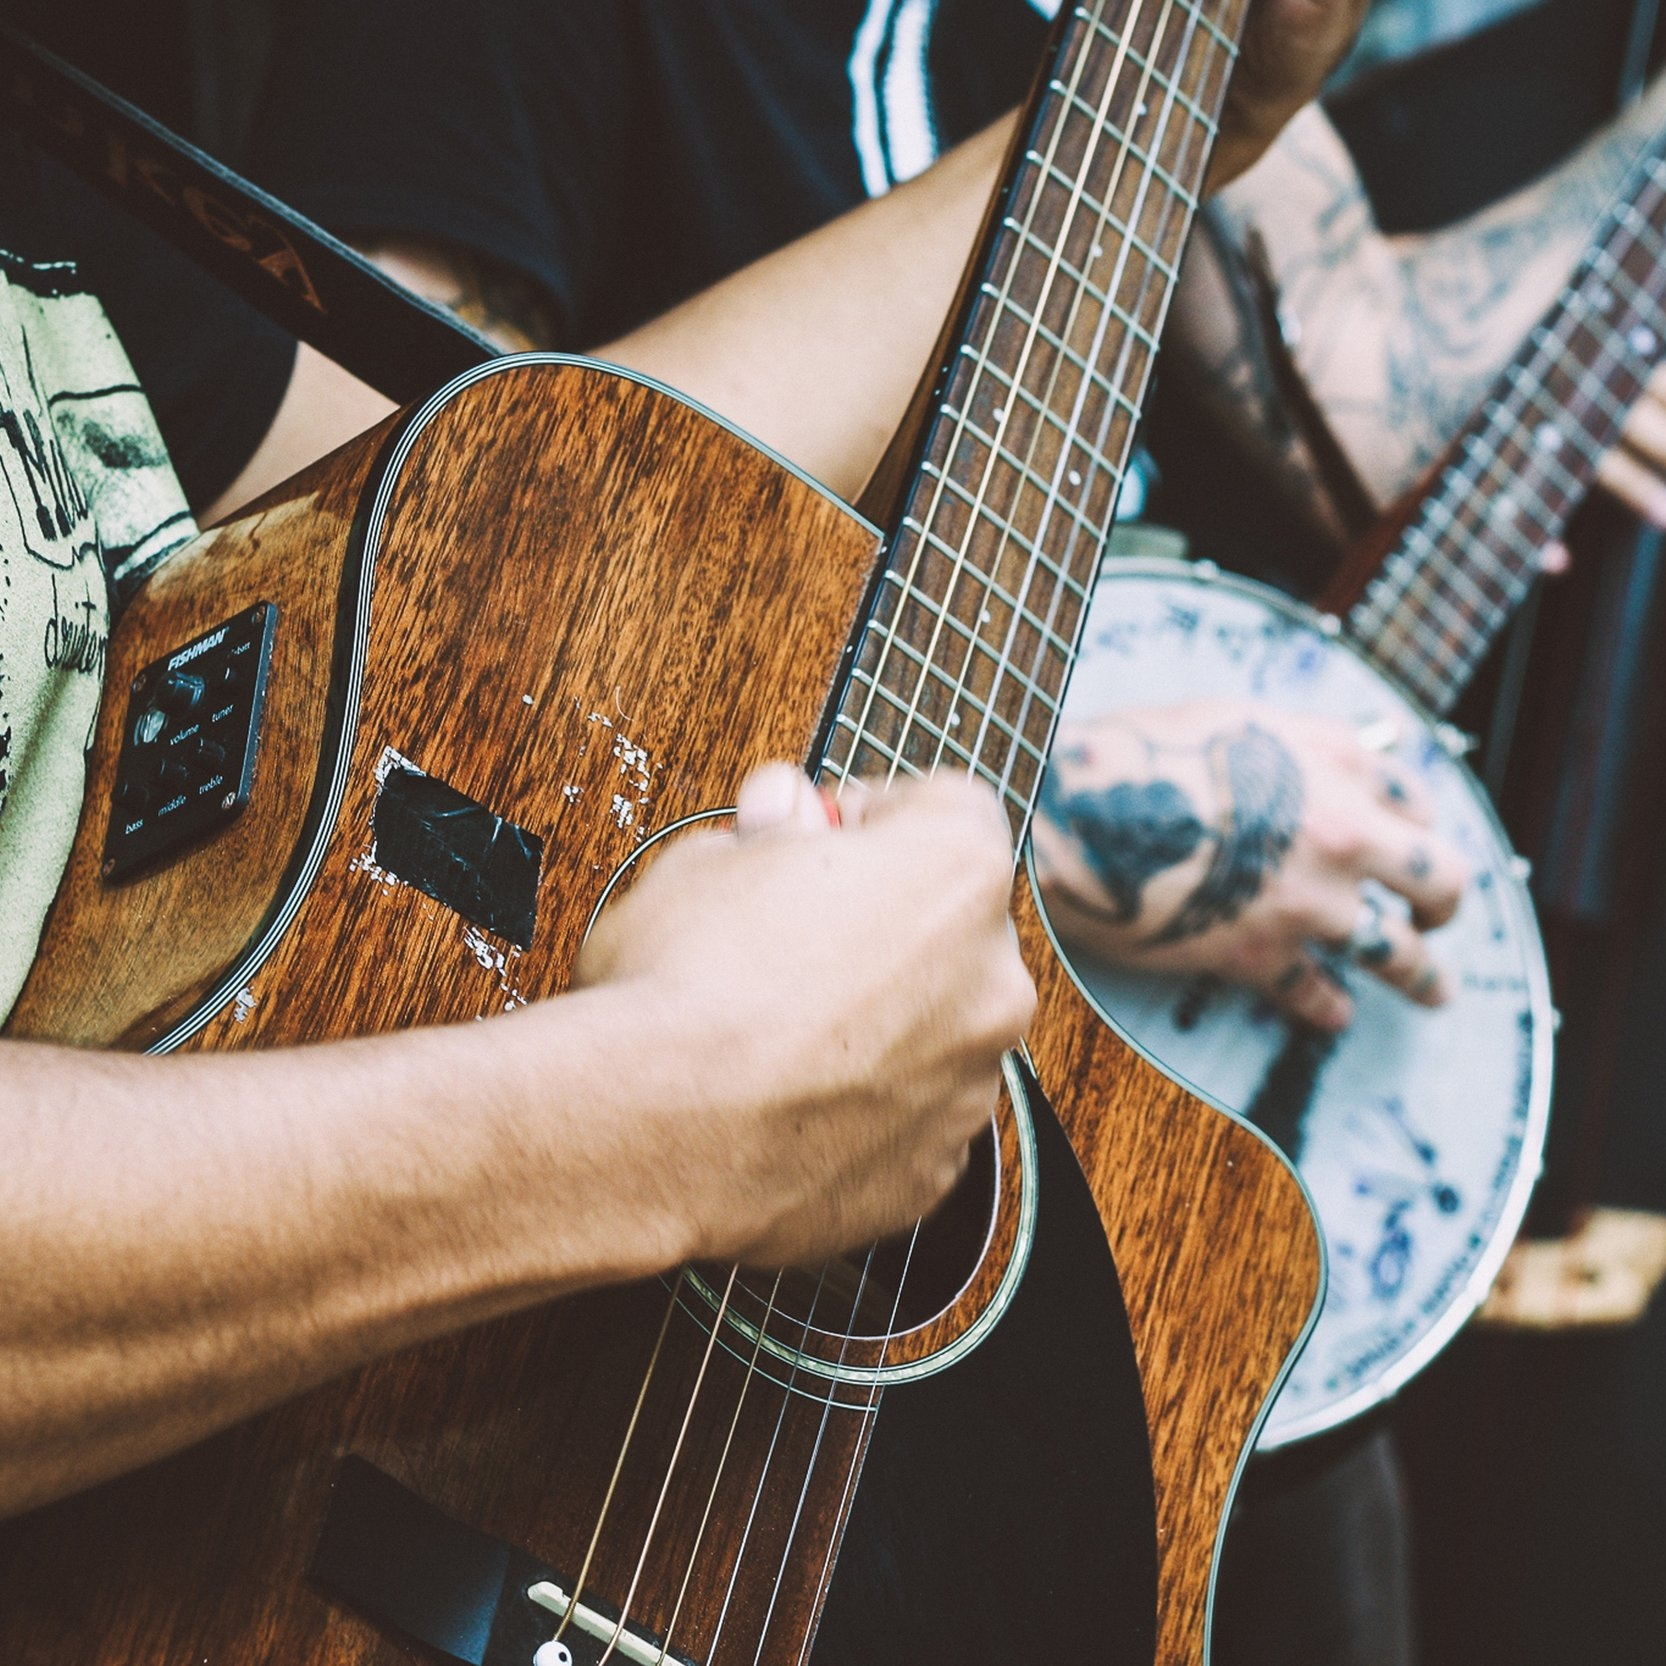 Find Live Music - Music is everywhere on the North Shore. Day or night you can see talented performers who are passionate about their music. Listening to local artists perform in small intimate venues is an experience you won't want to miss. Live music connects us to each other and is part of Minnesota's North Shore magic. Some of our favorite venues are Bluefin Bay, Lutsen Resort Lodge, Cascade Lodge, Papa Charlie's, and The Tavern. For complete live music schedules and details listen to WTIP North Shore Community Radio, 90.7 FM, or check out the music calendar online.